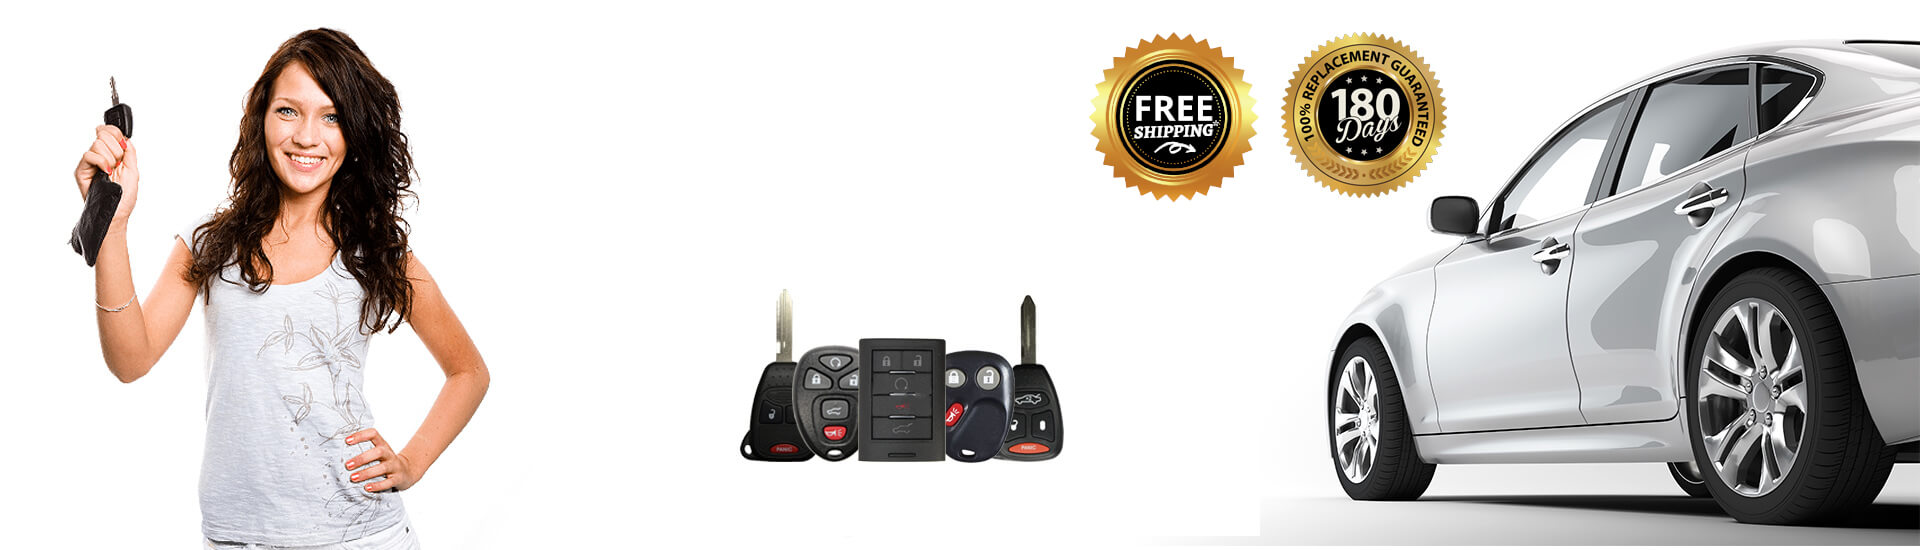 Replace My Remote is your one stop online solution to buy